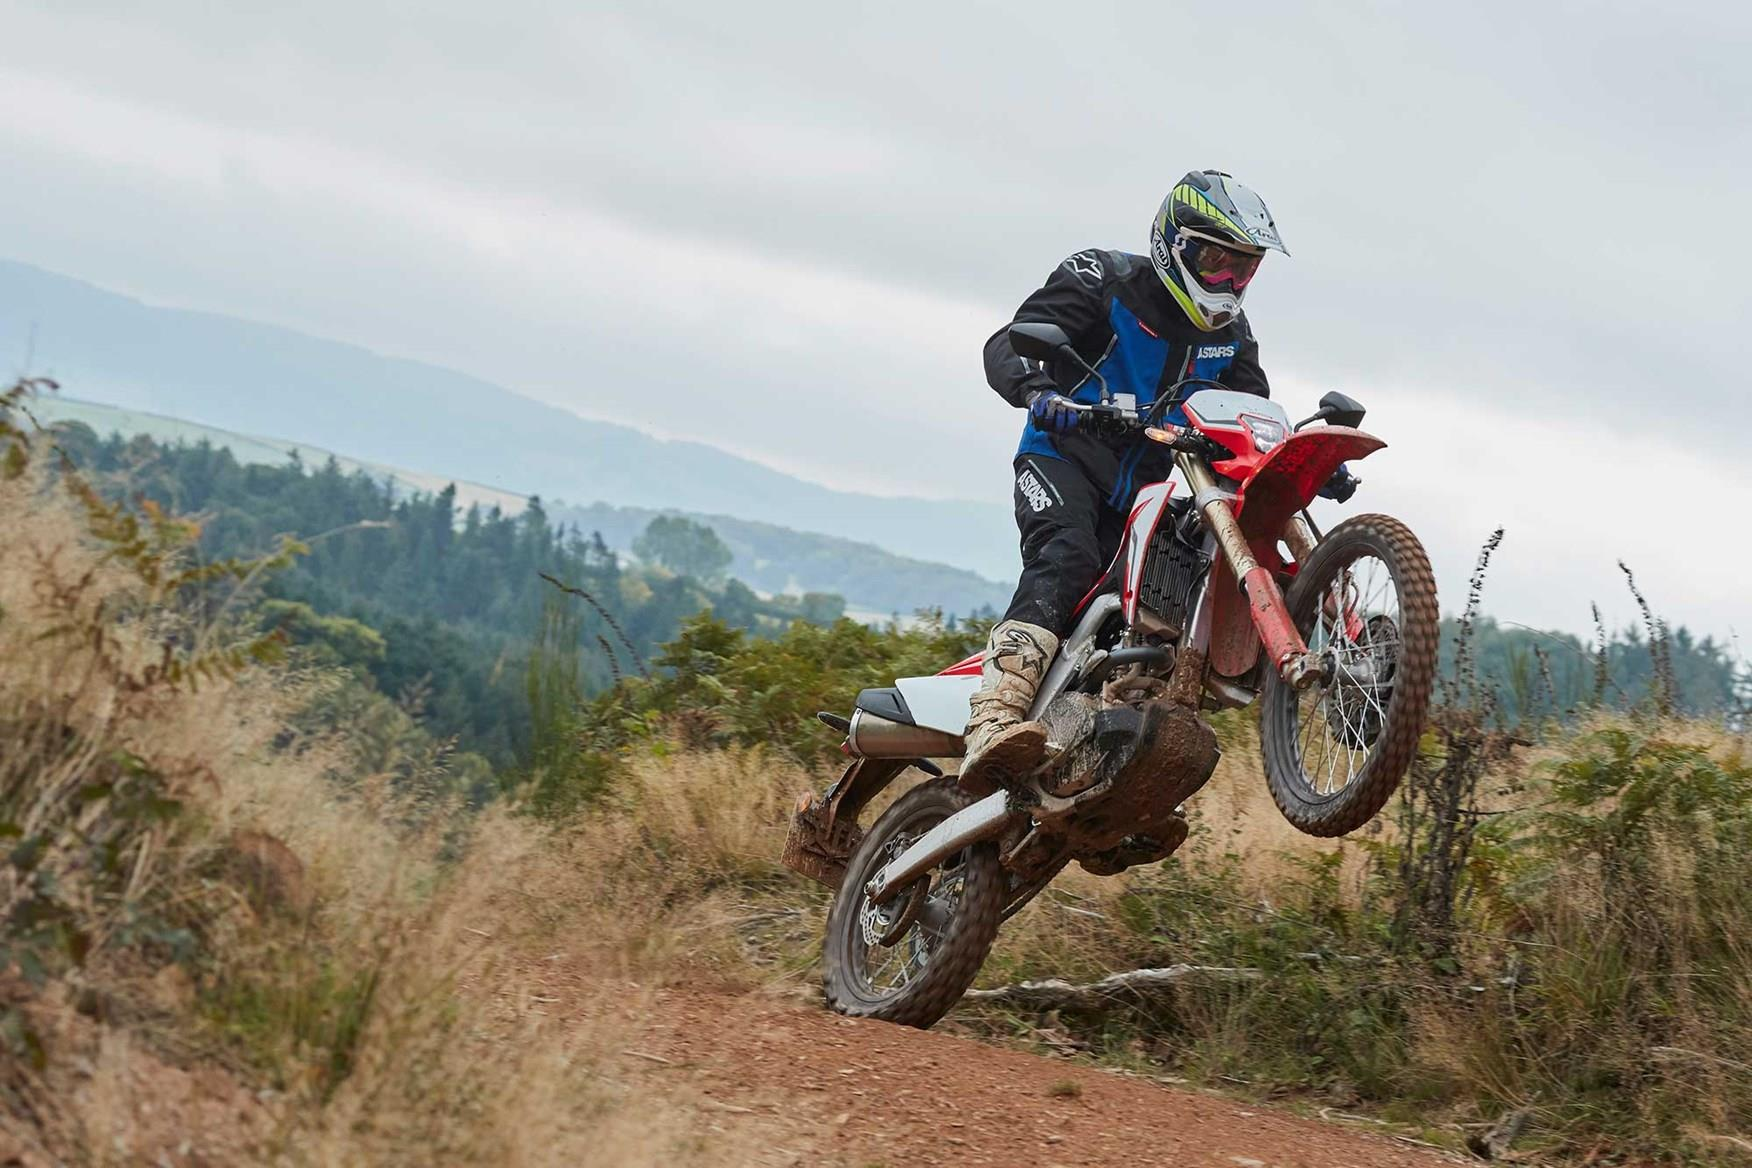 Try the new CRF450L at a Dave Thorpe event in 2019